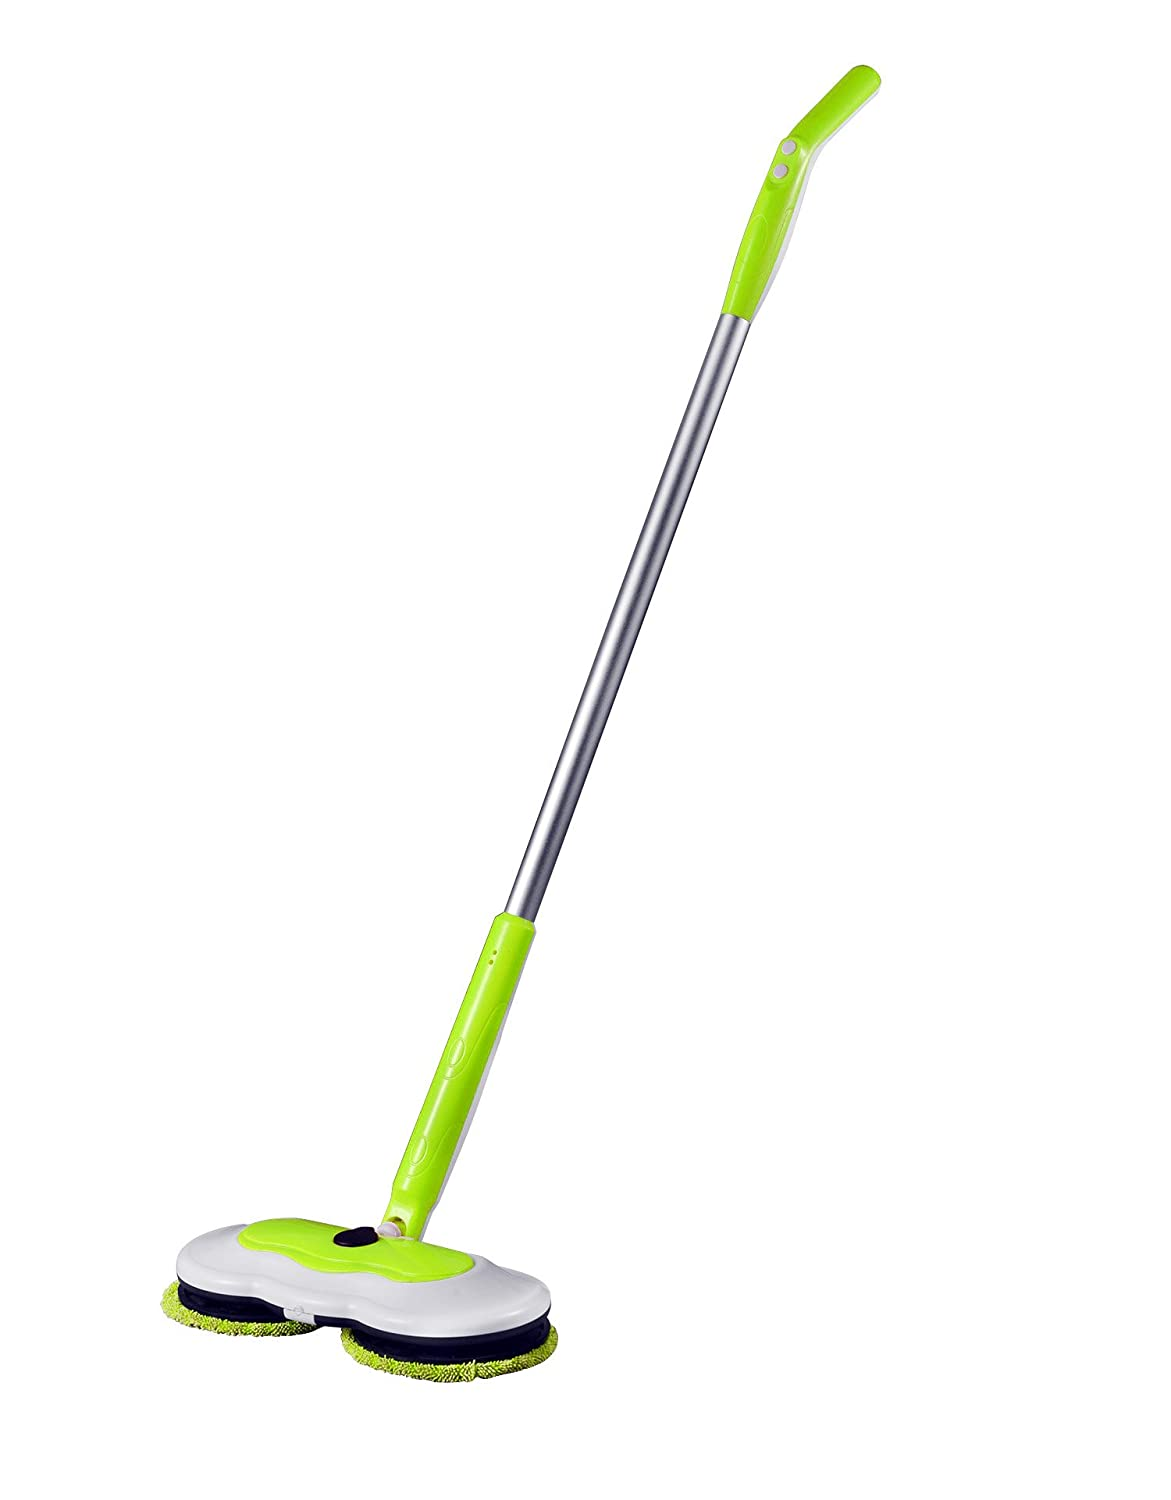 Armati Electric Cordless Mop - Household Sweeper Robot with Water Case  Allow Mixed Liquor, Acid Liquor, Alkaline Liquor - Green